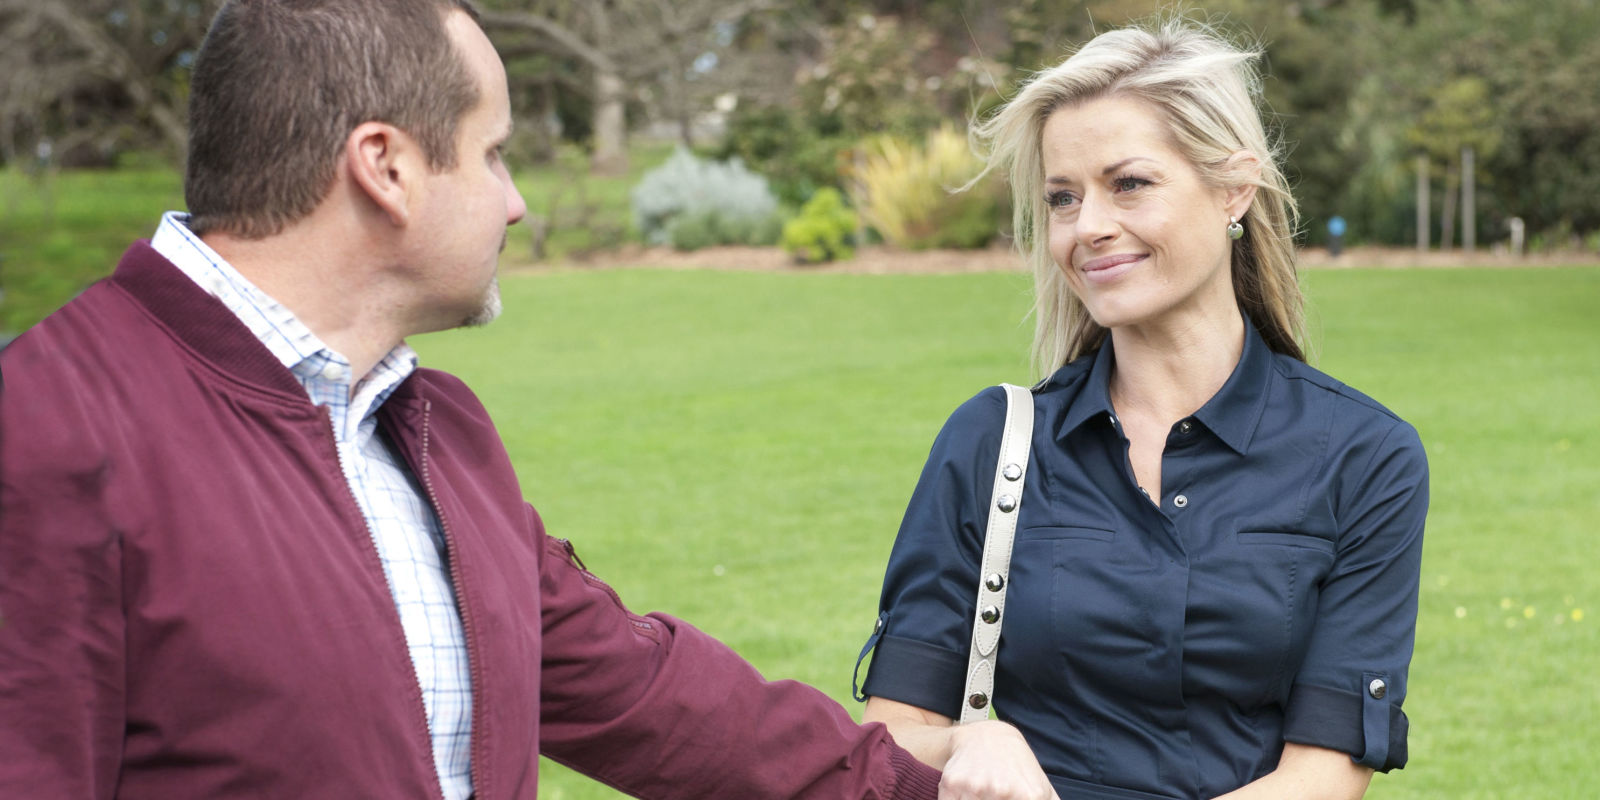 neighbours star ryan moloney answers one of our burning